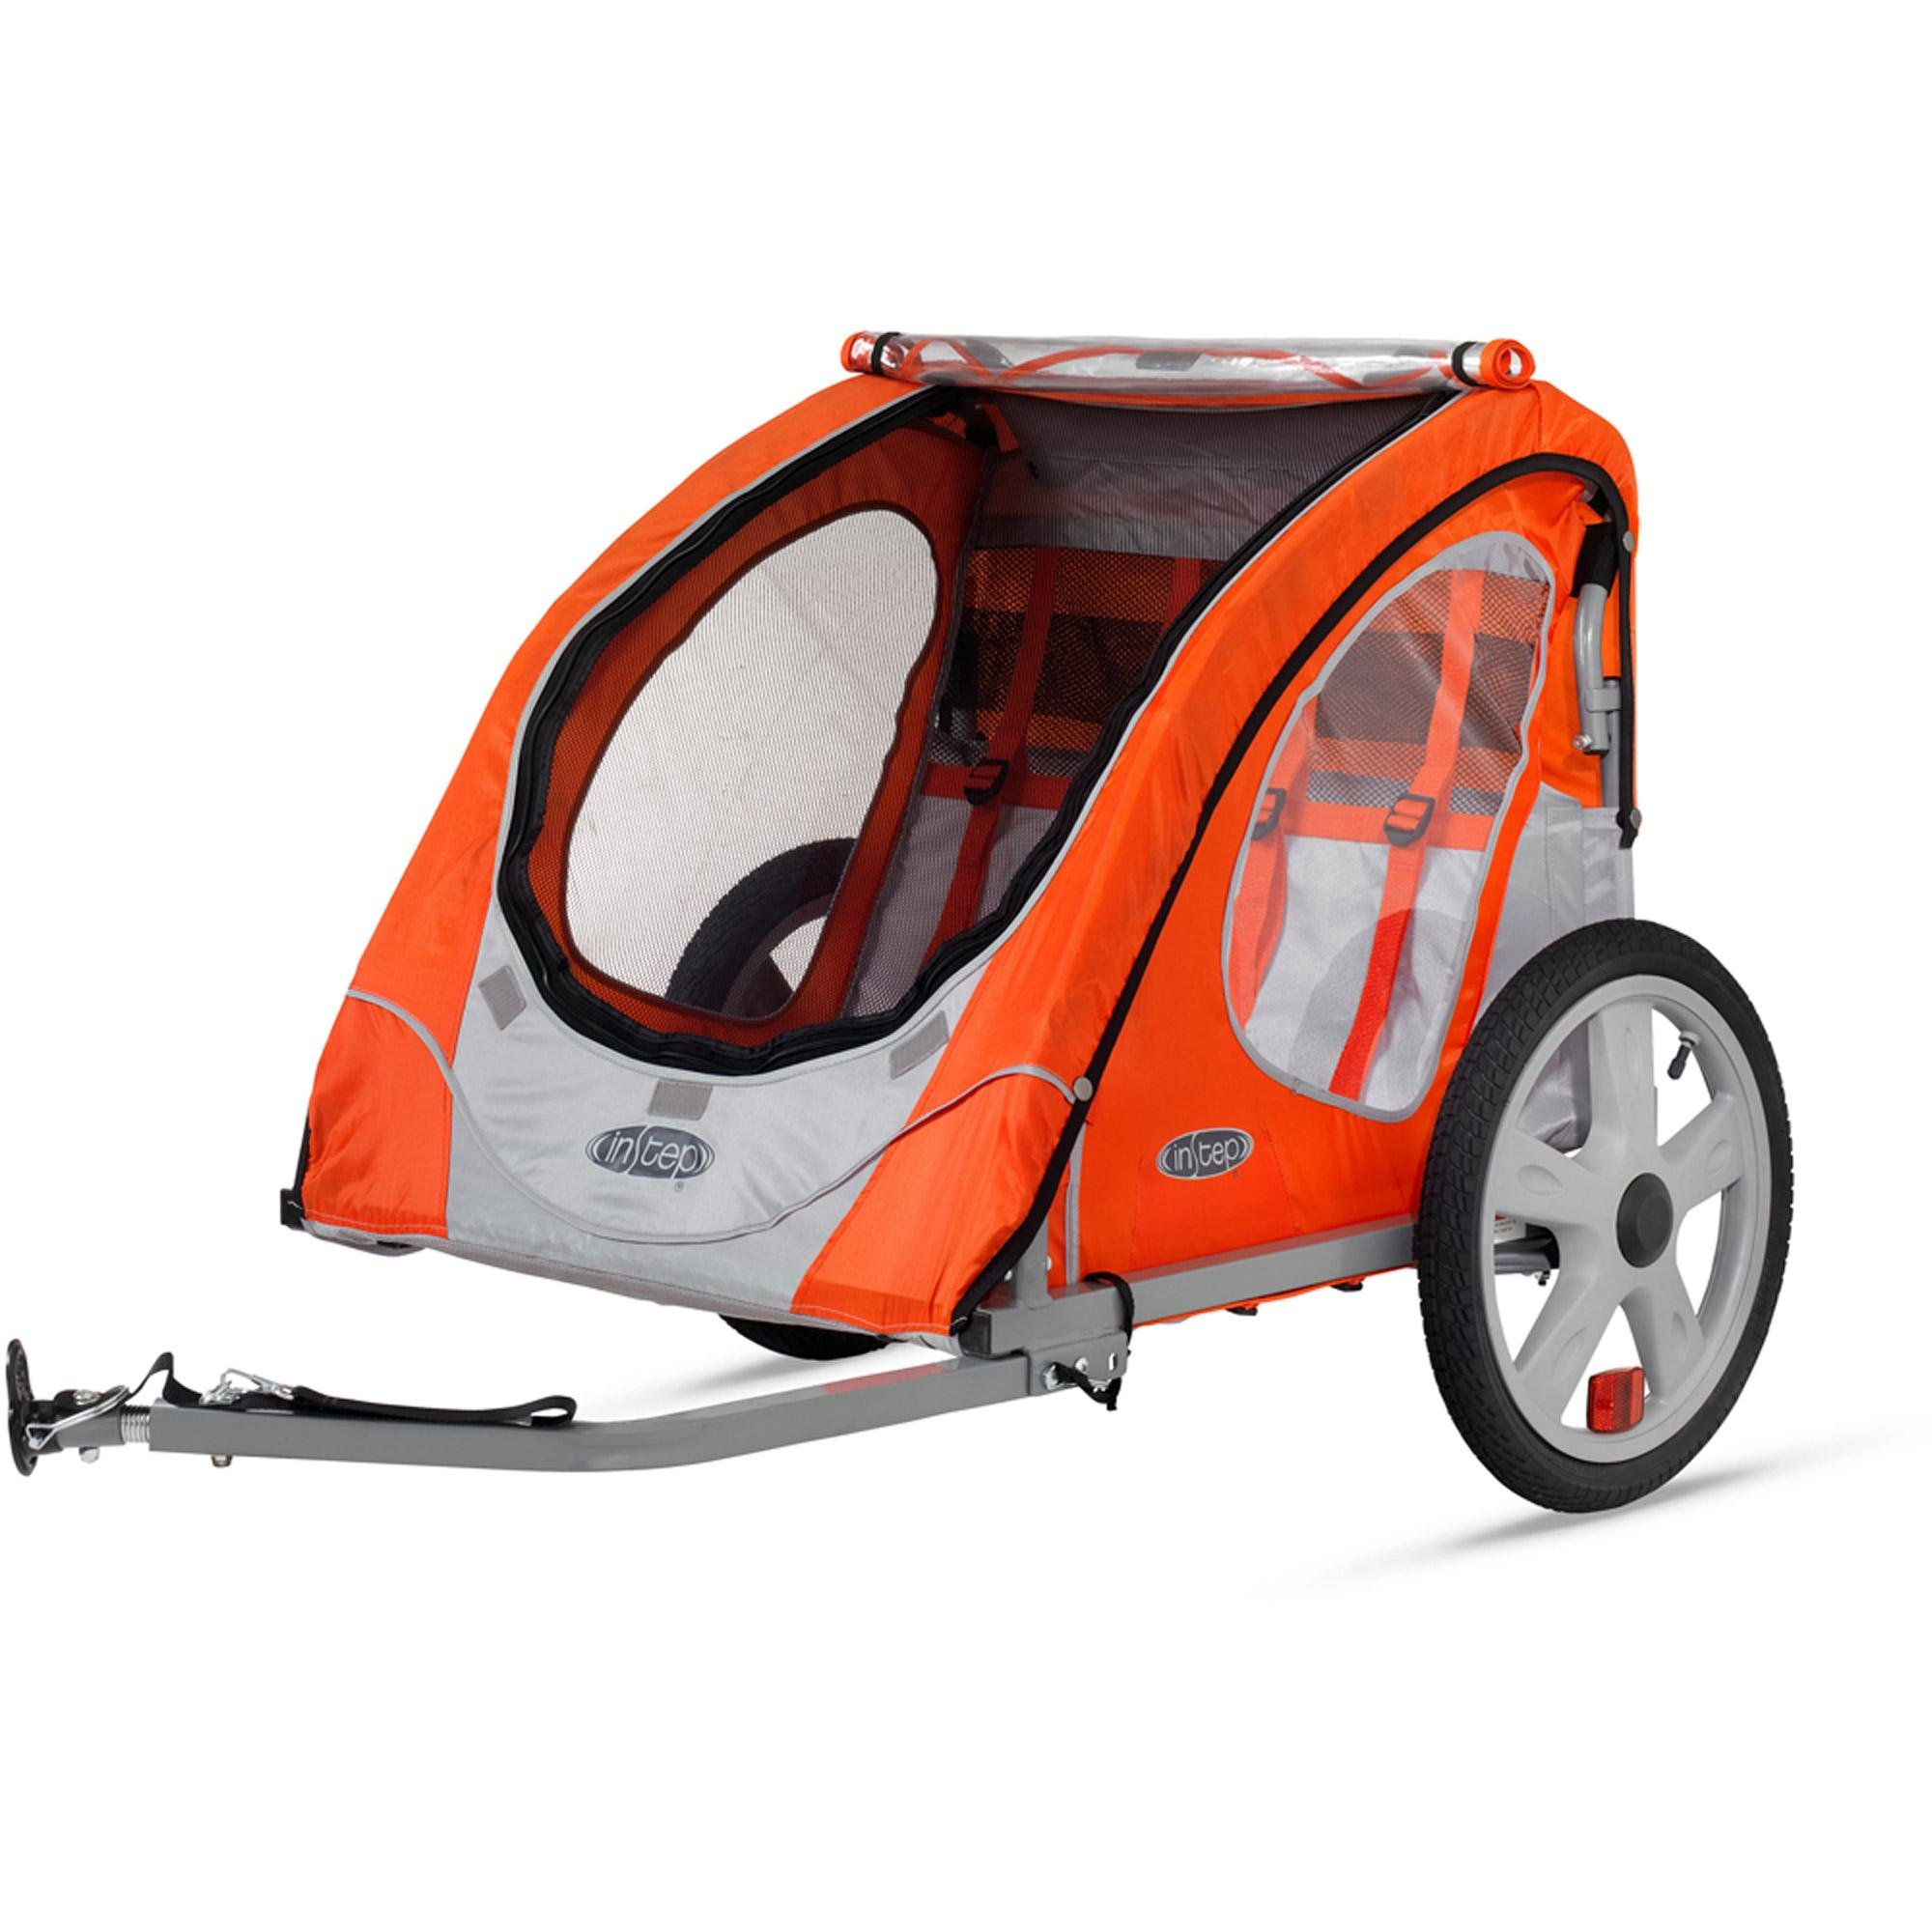 Instep Robin Two Seat Portable Bike Trailer for Children or Pets by Instep